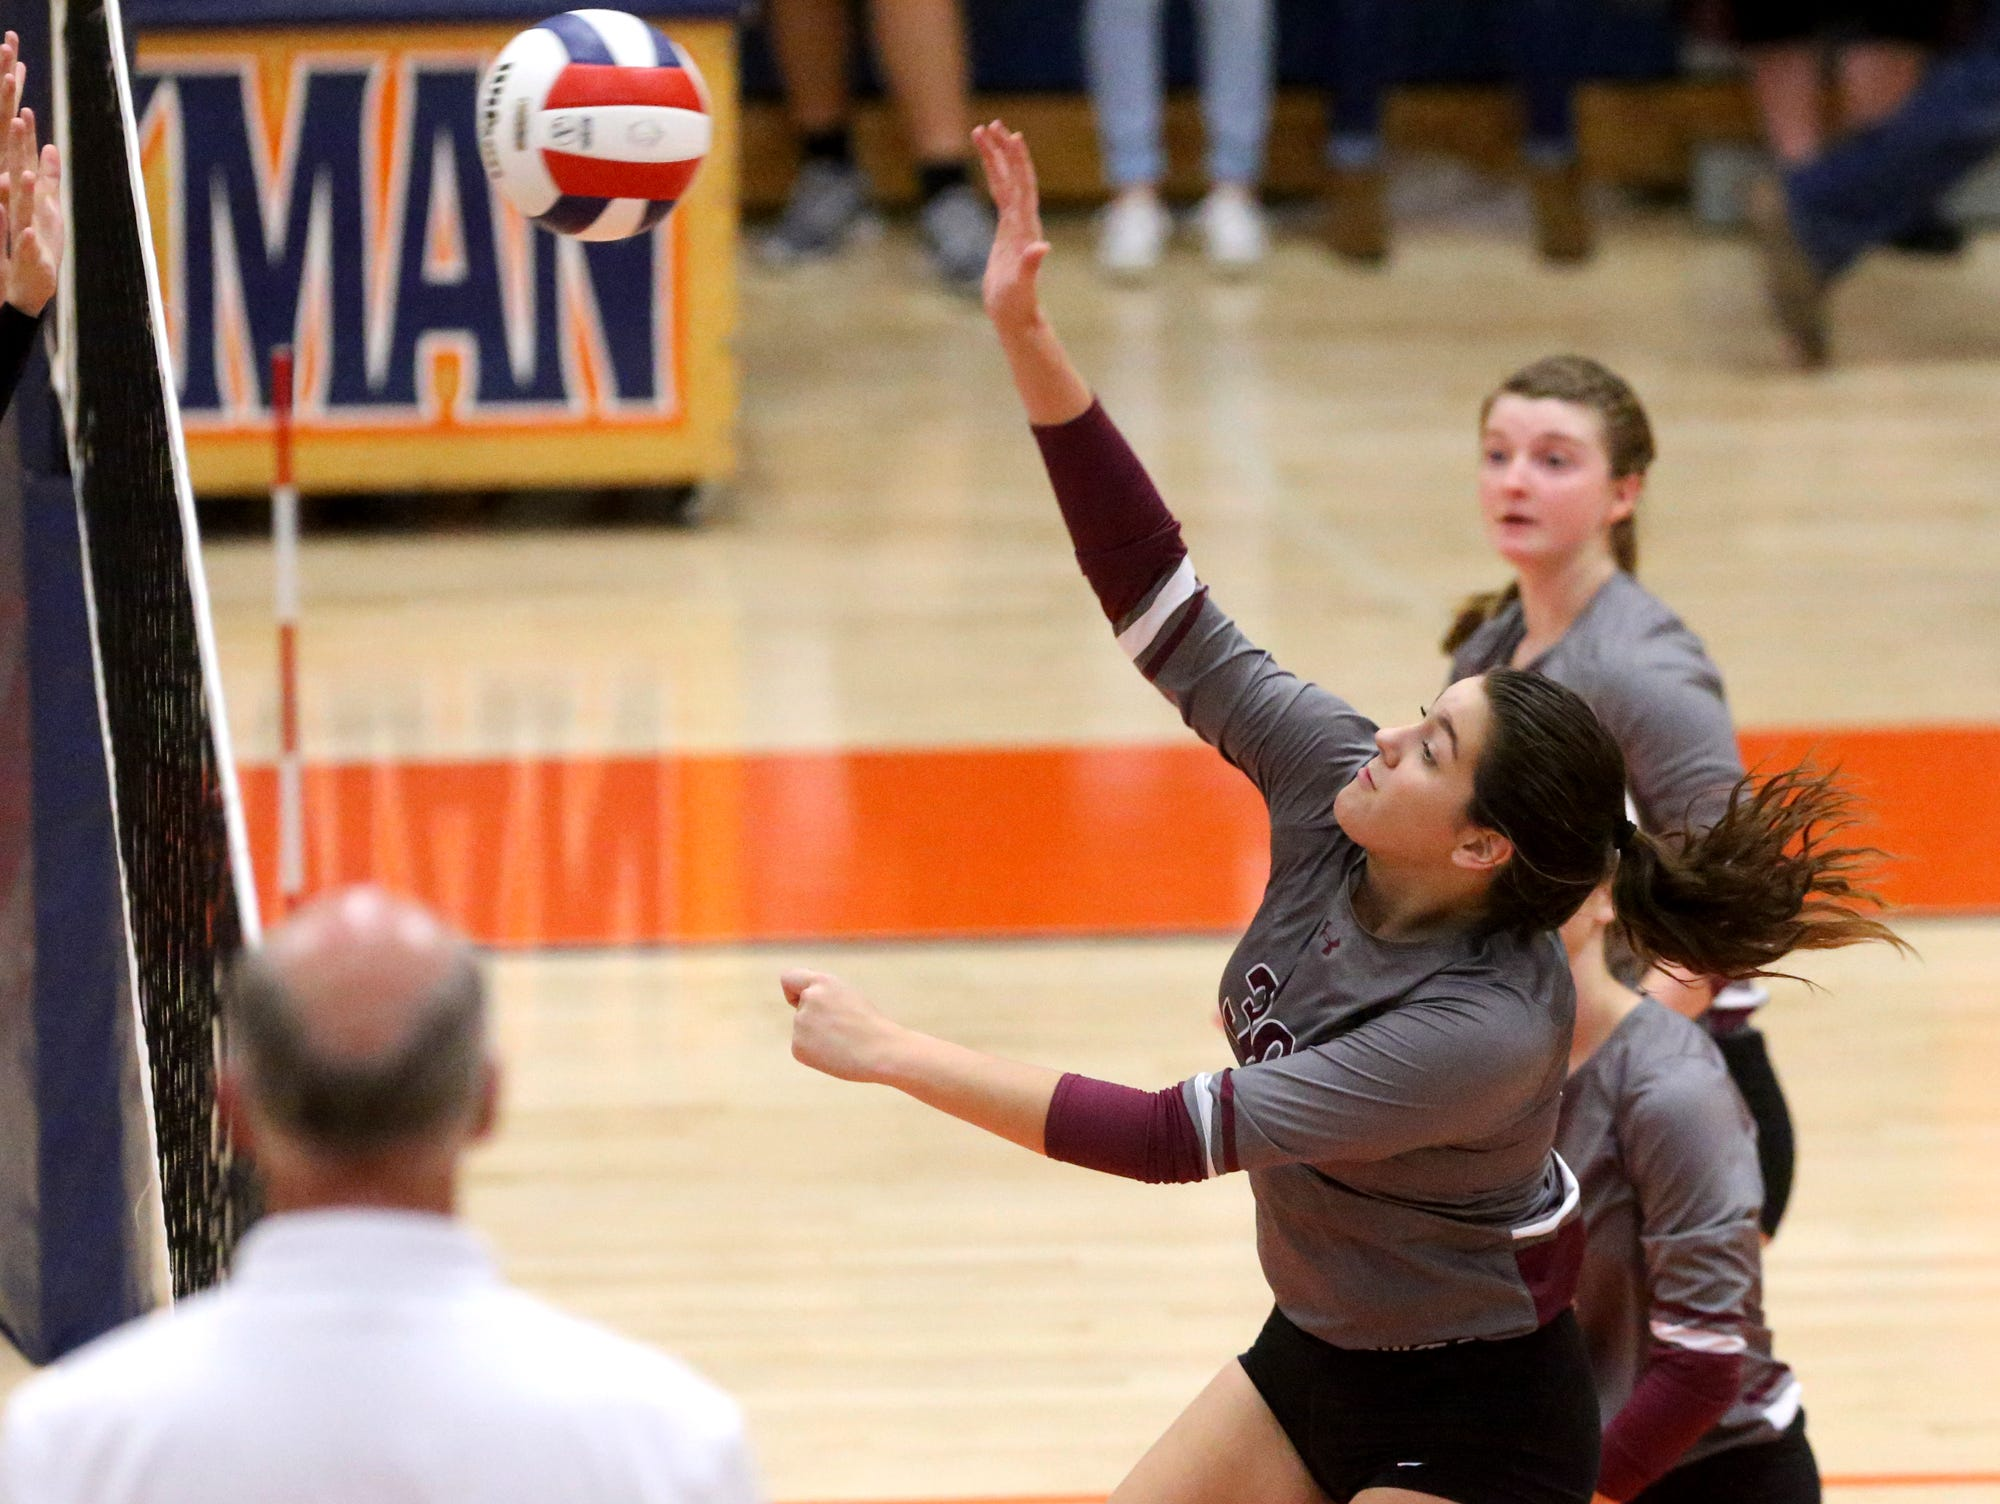 Eagleville's Tori Laidig (30) hits the ball over the net during the first round of the TSSAA Class A state volleyball tournament against Jackson County, on Wednesday, Oct. 21, 2015, at Blackman.